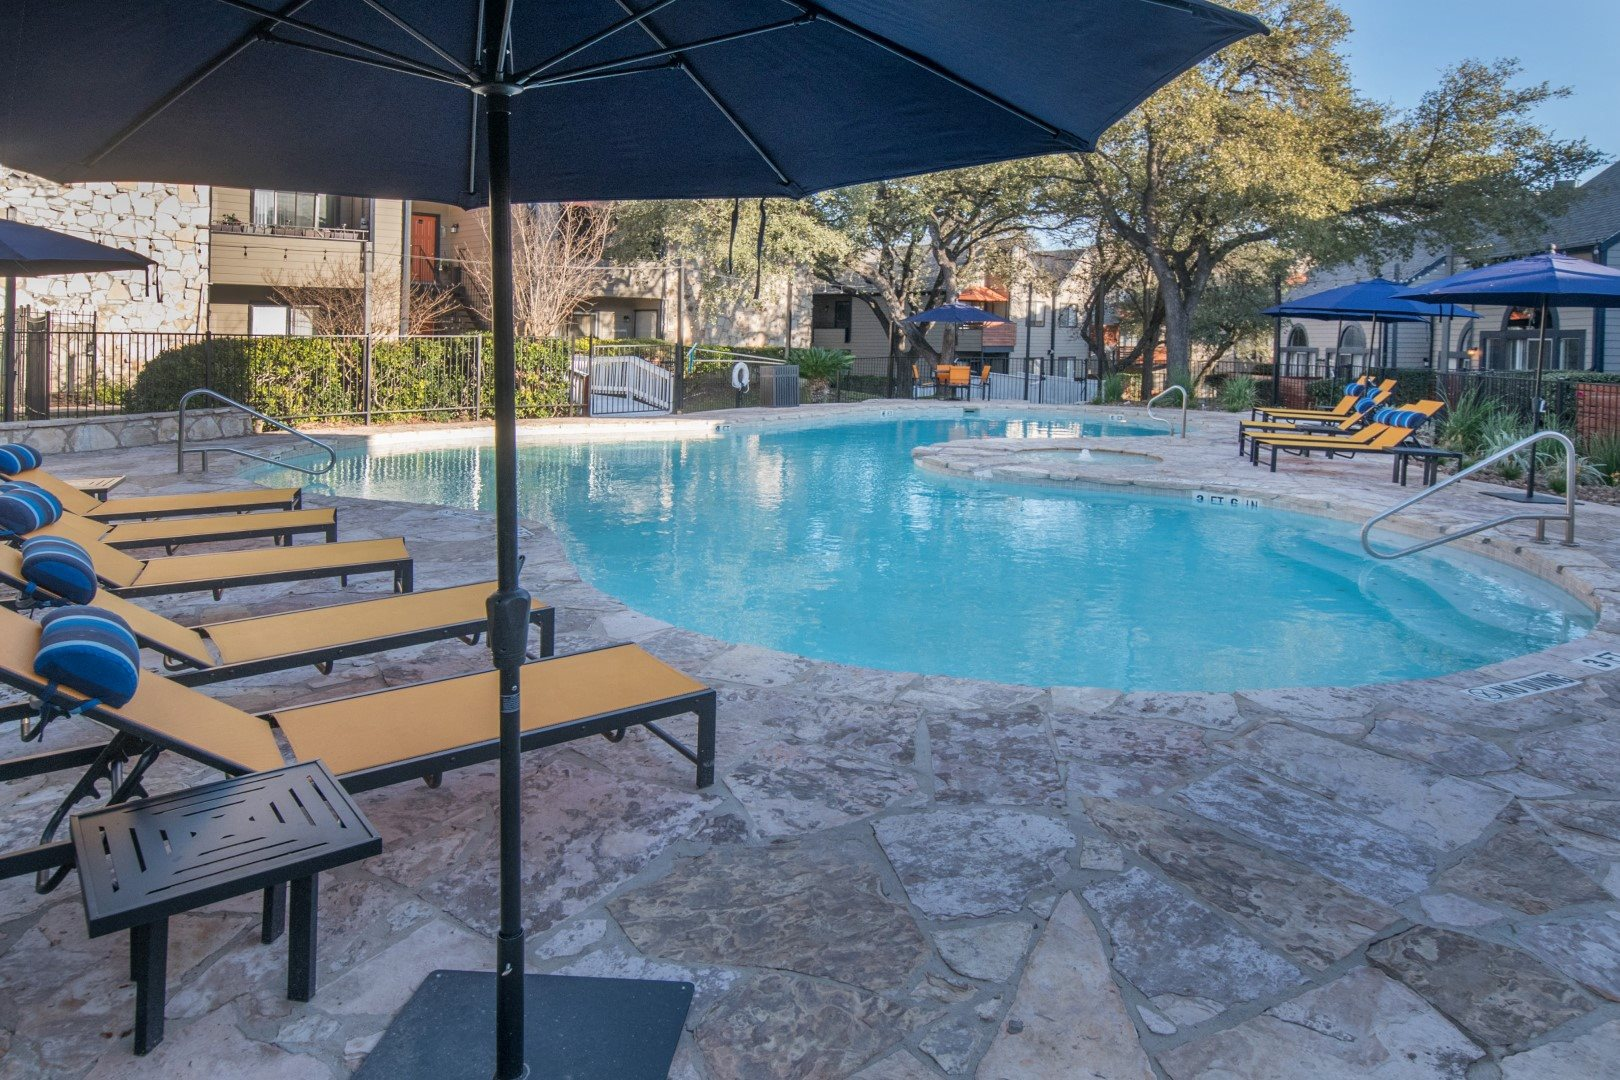 northwest san antonio apartments with pool